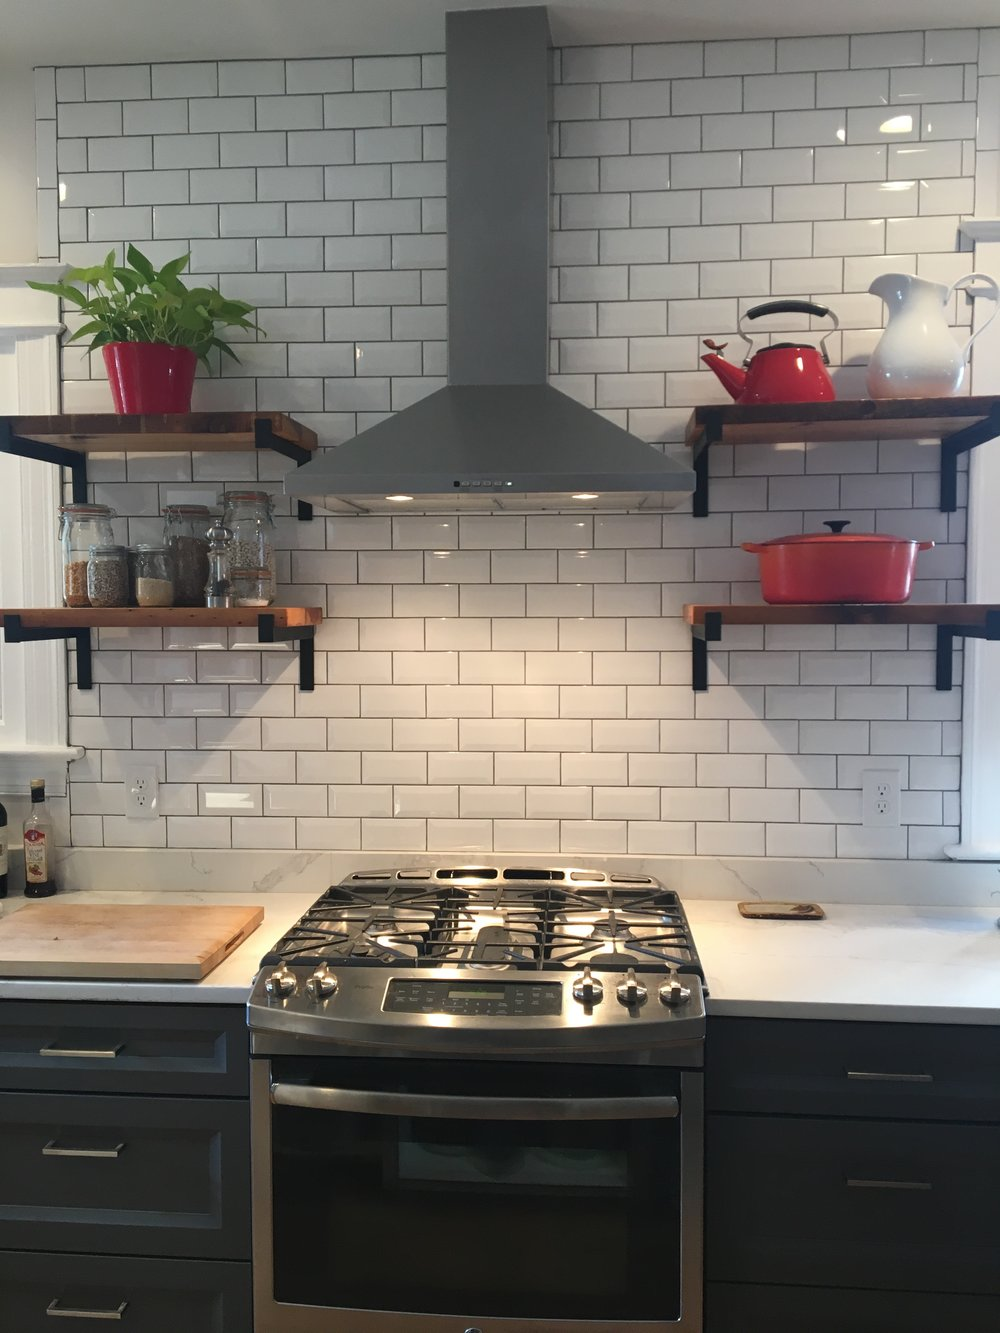 Kitchen Fab Shelves.jpg